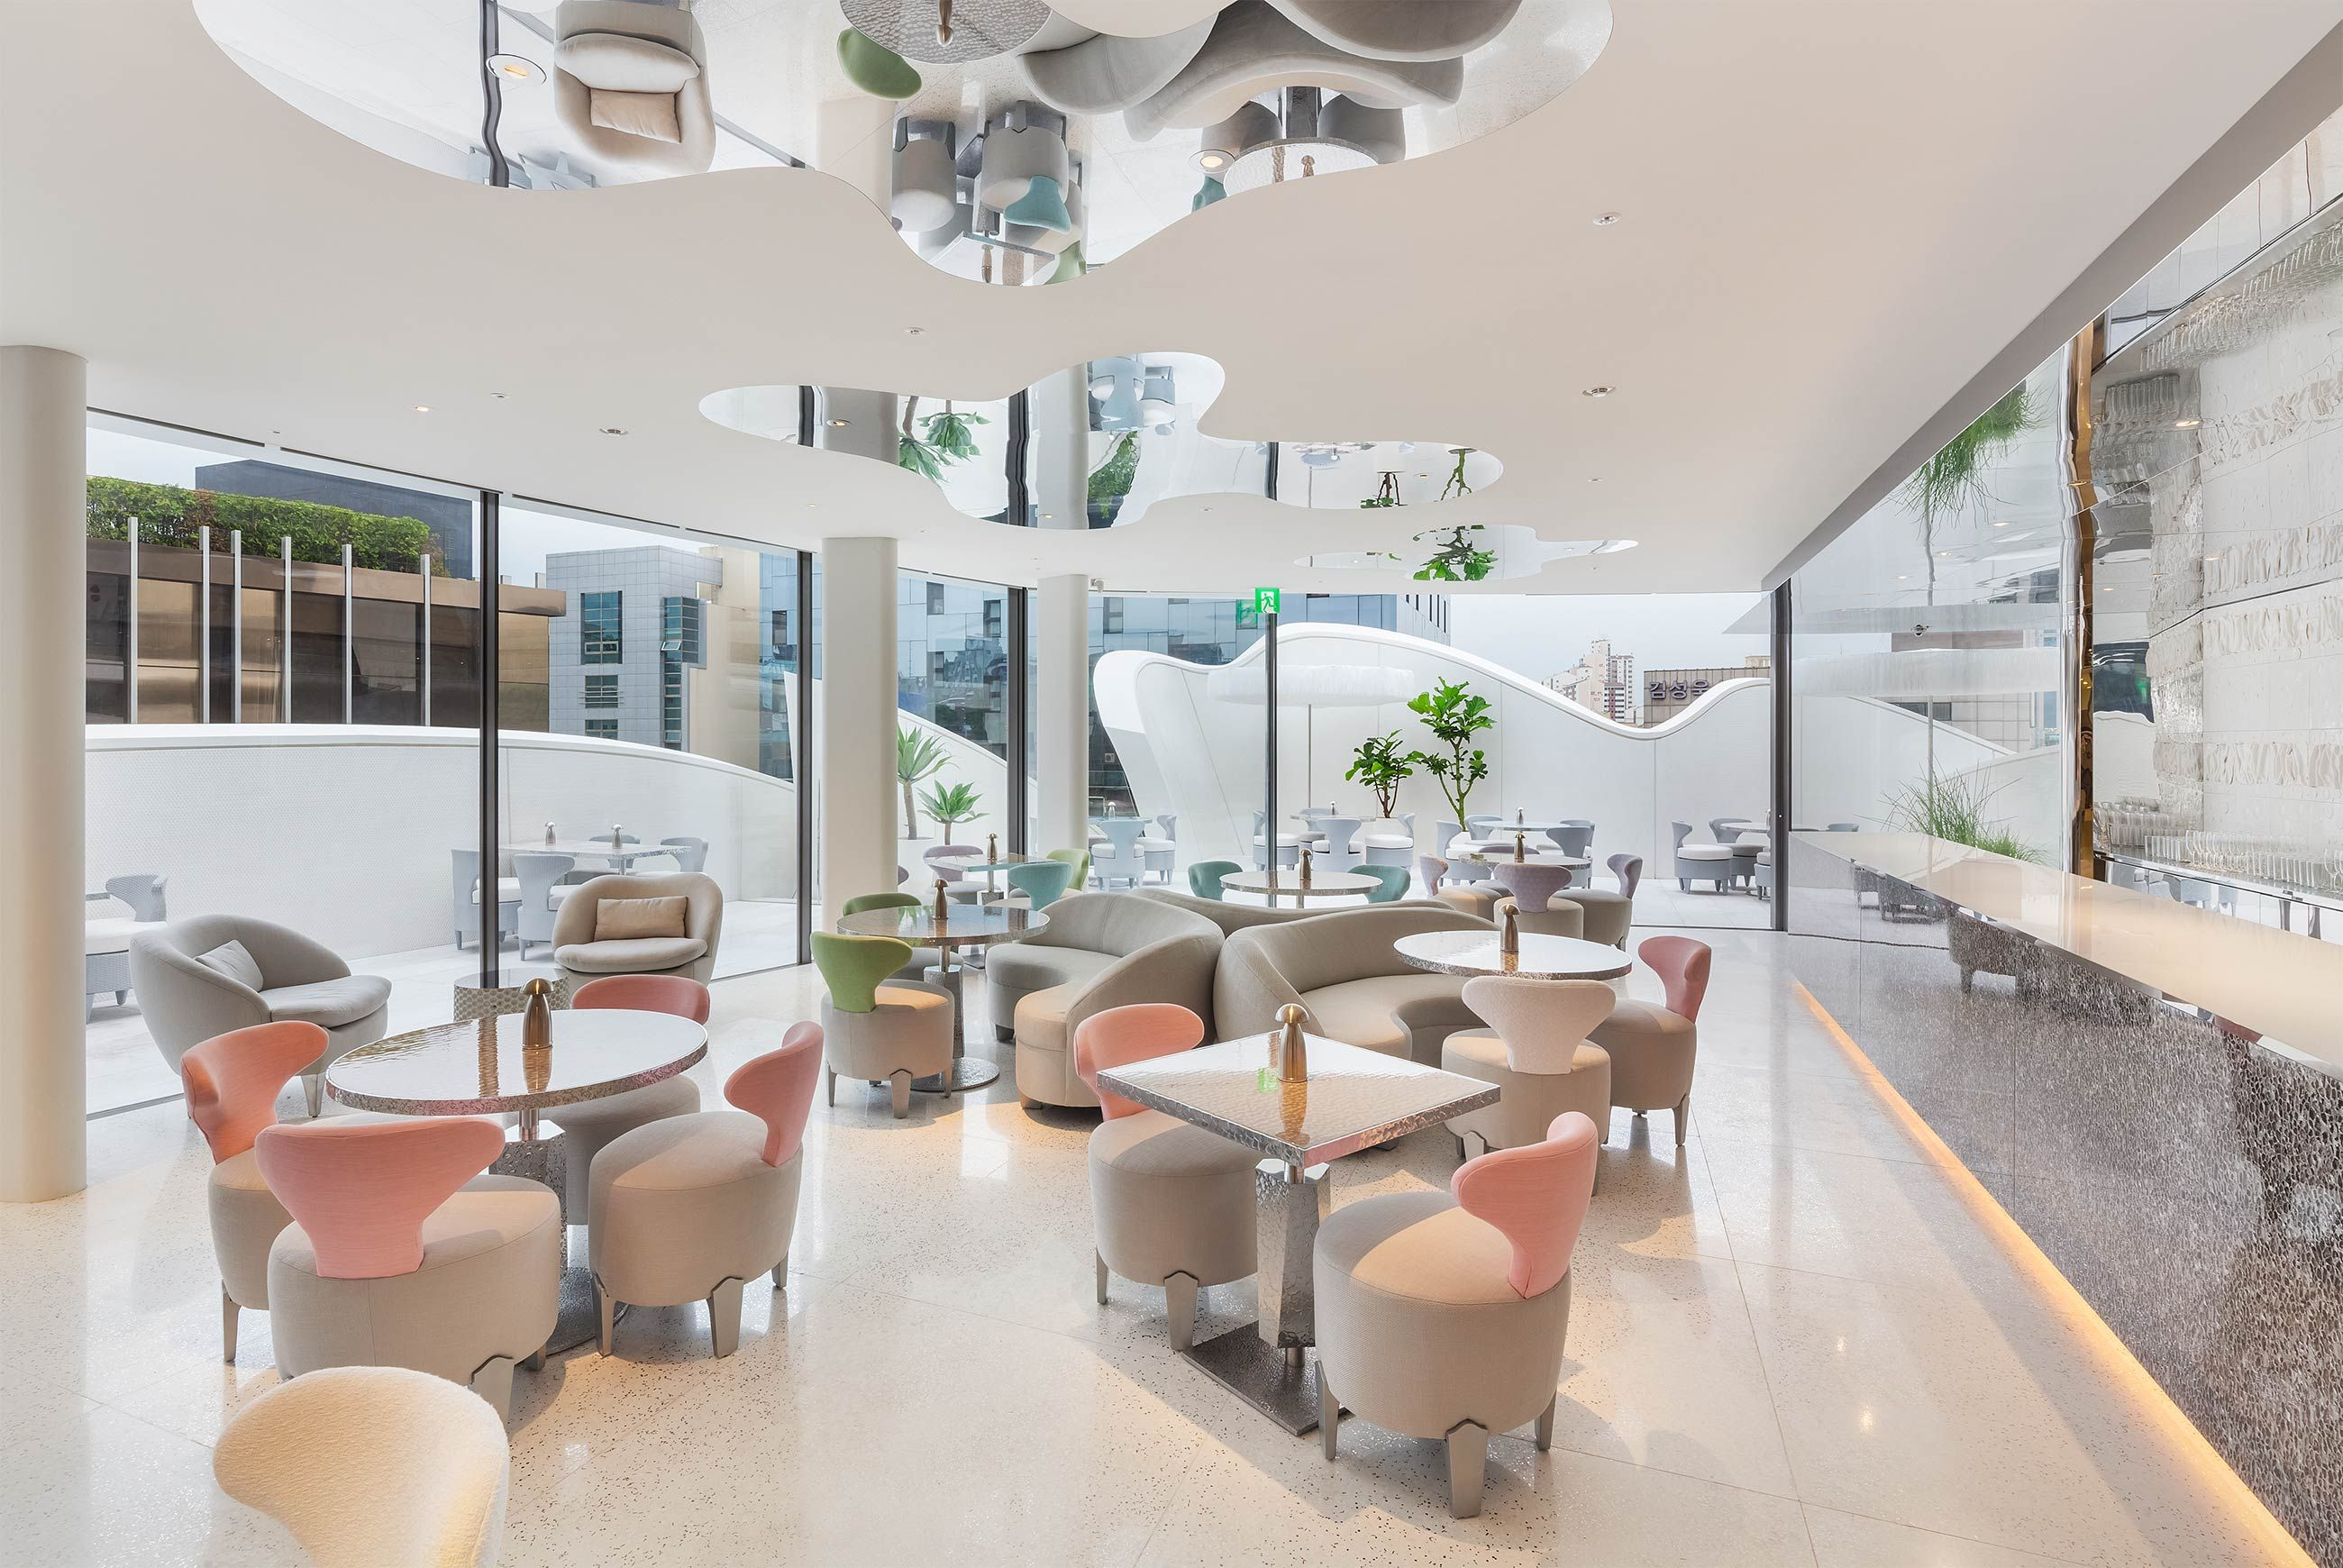 Dior café by pierre hermé at gangnam gu district in seoul featuring neozs owl 1 cordless lamps see more at www neoz com au